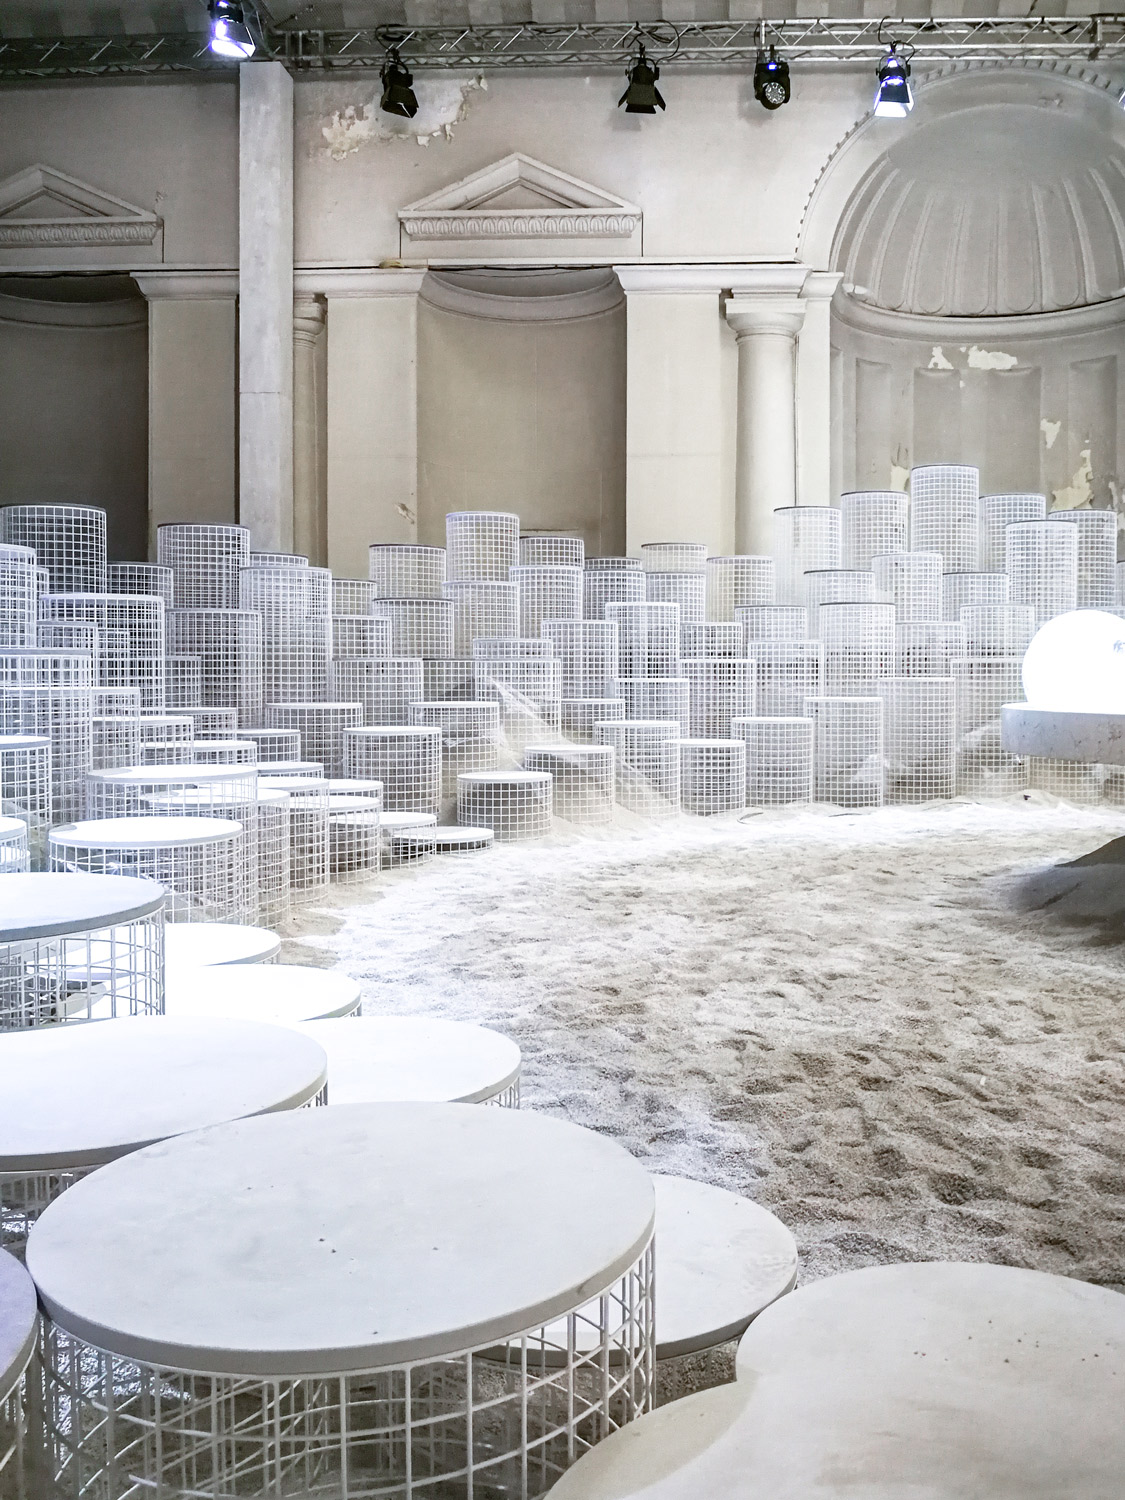 Milan Design Week 2018 - Installations You Will Love Caesarstone Snarkitecture - www.AuthenticInterior.com Design Blog